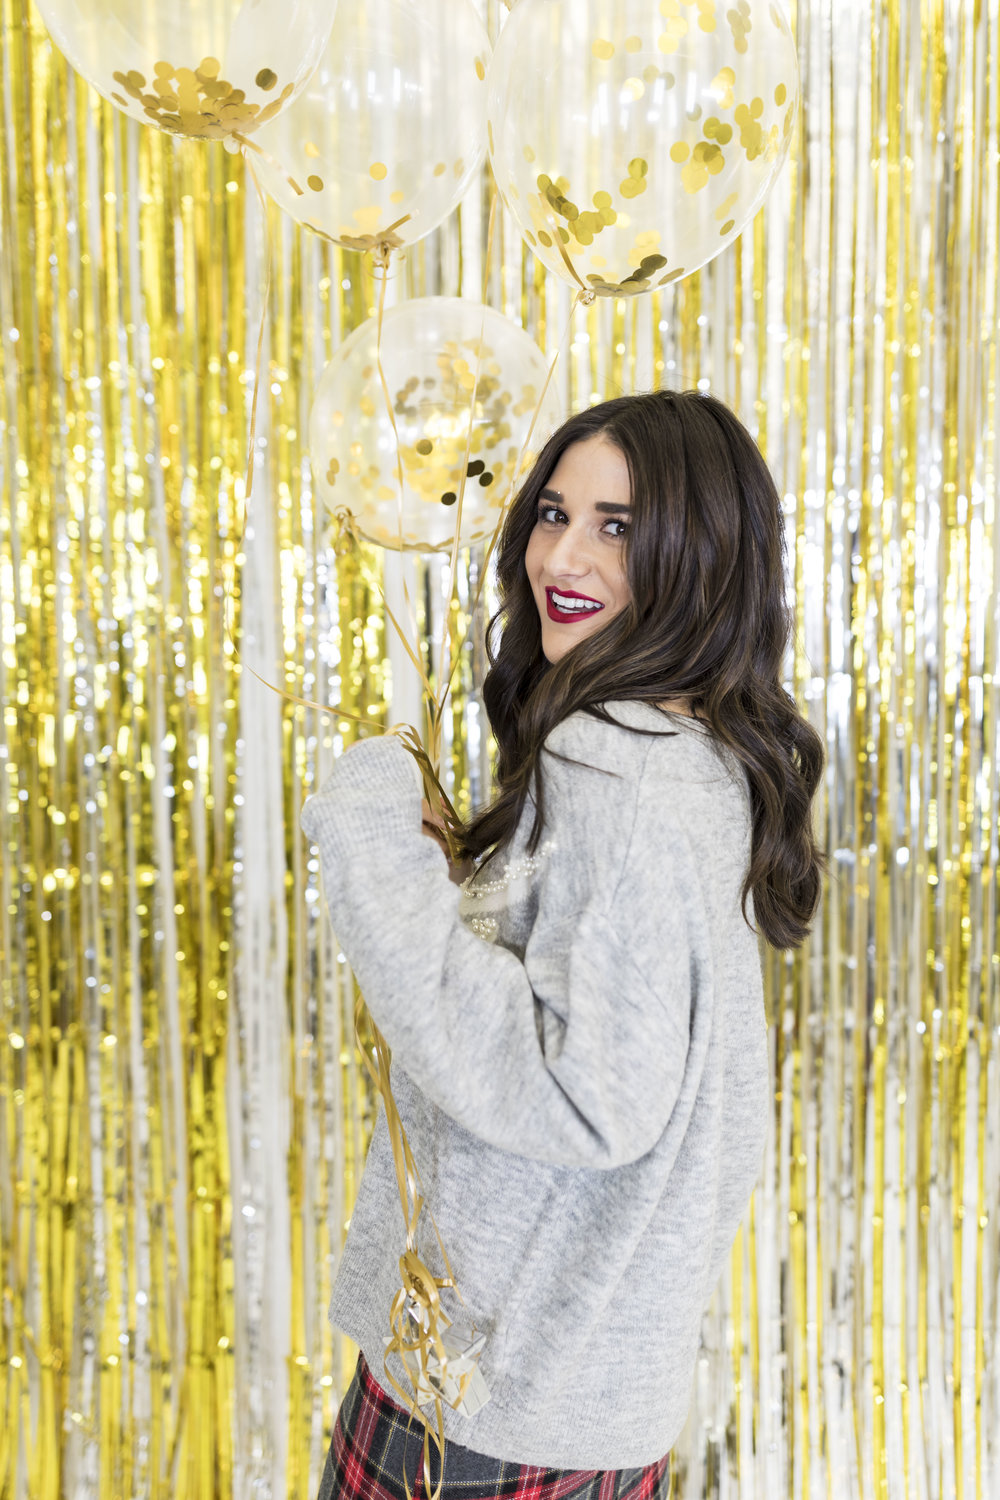 H&M Holiday Video Collab Esther Santer Fashion Blog NYC Street Style Blogger Outfit OOTD Trendy Confetti Streamers Balloons Presents Gift Wrap Shopping Wear Stylist Photoshoot Studio Videographer Hairstyle DryBar Girls Friends Belt Accessories Jewelry.jpg